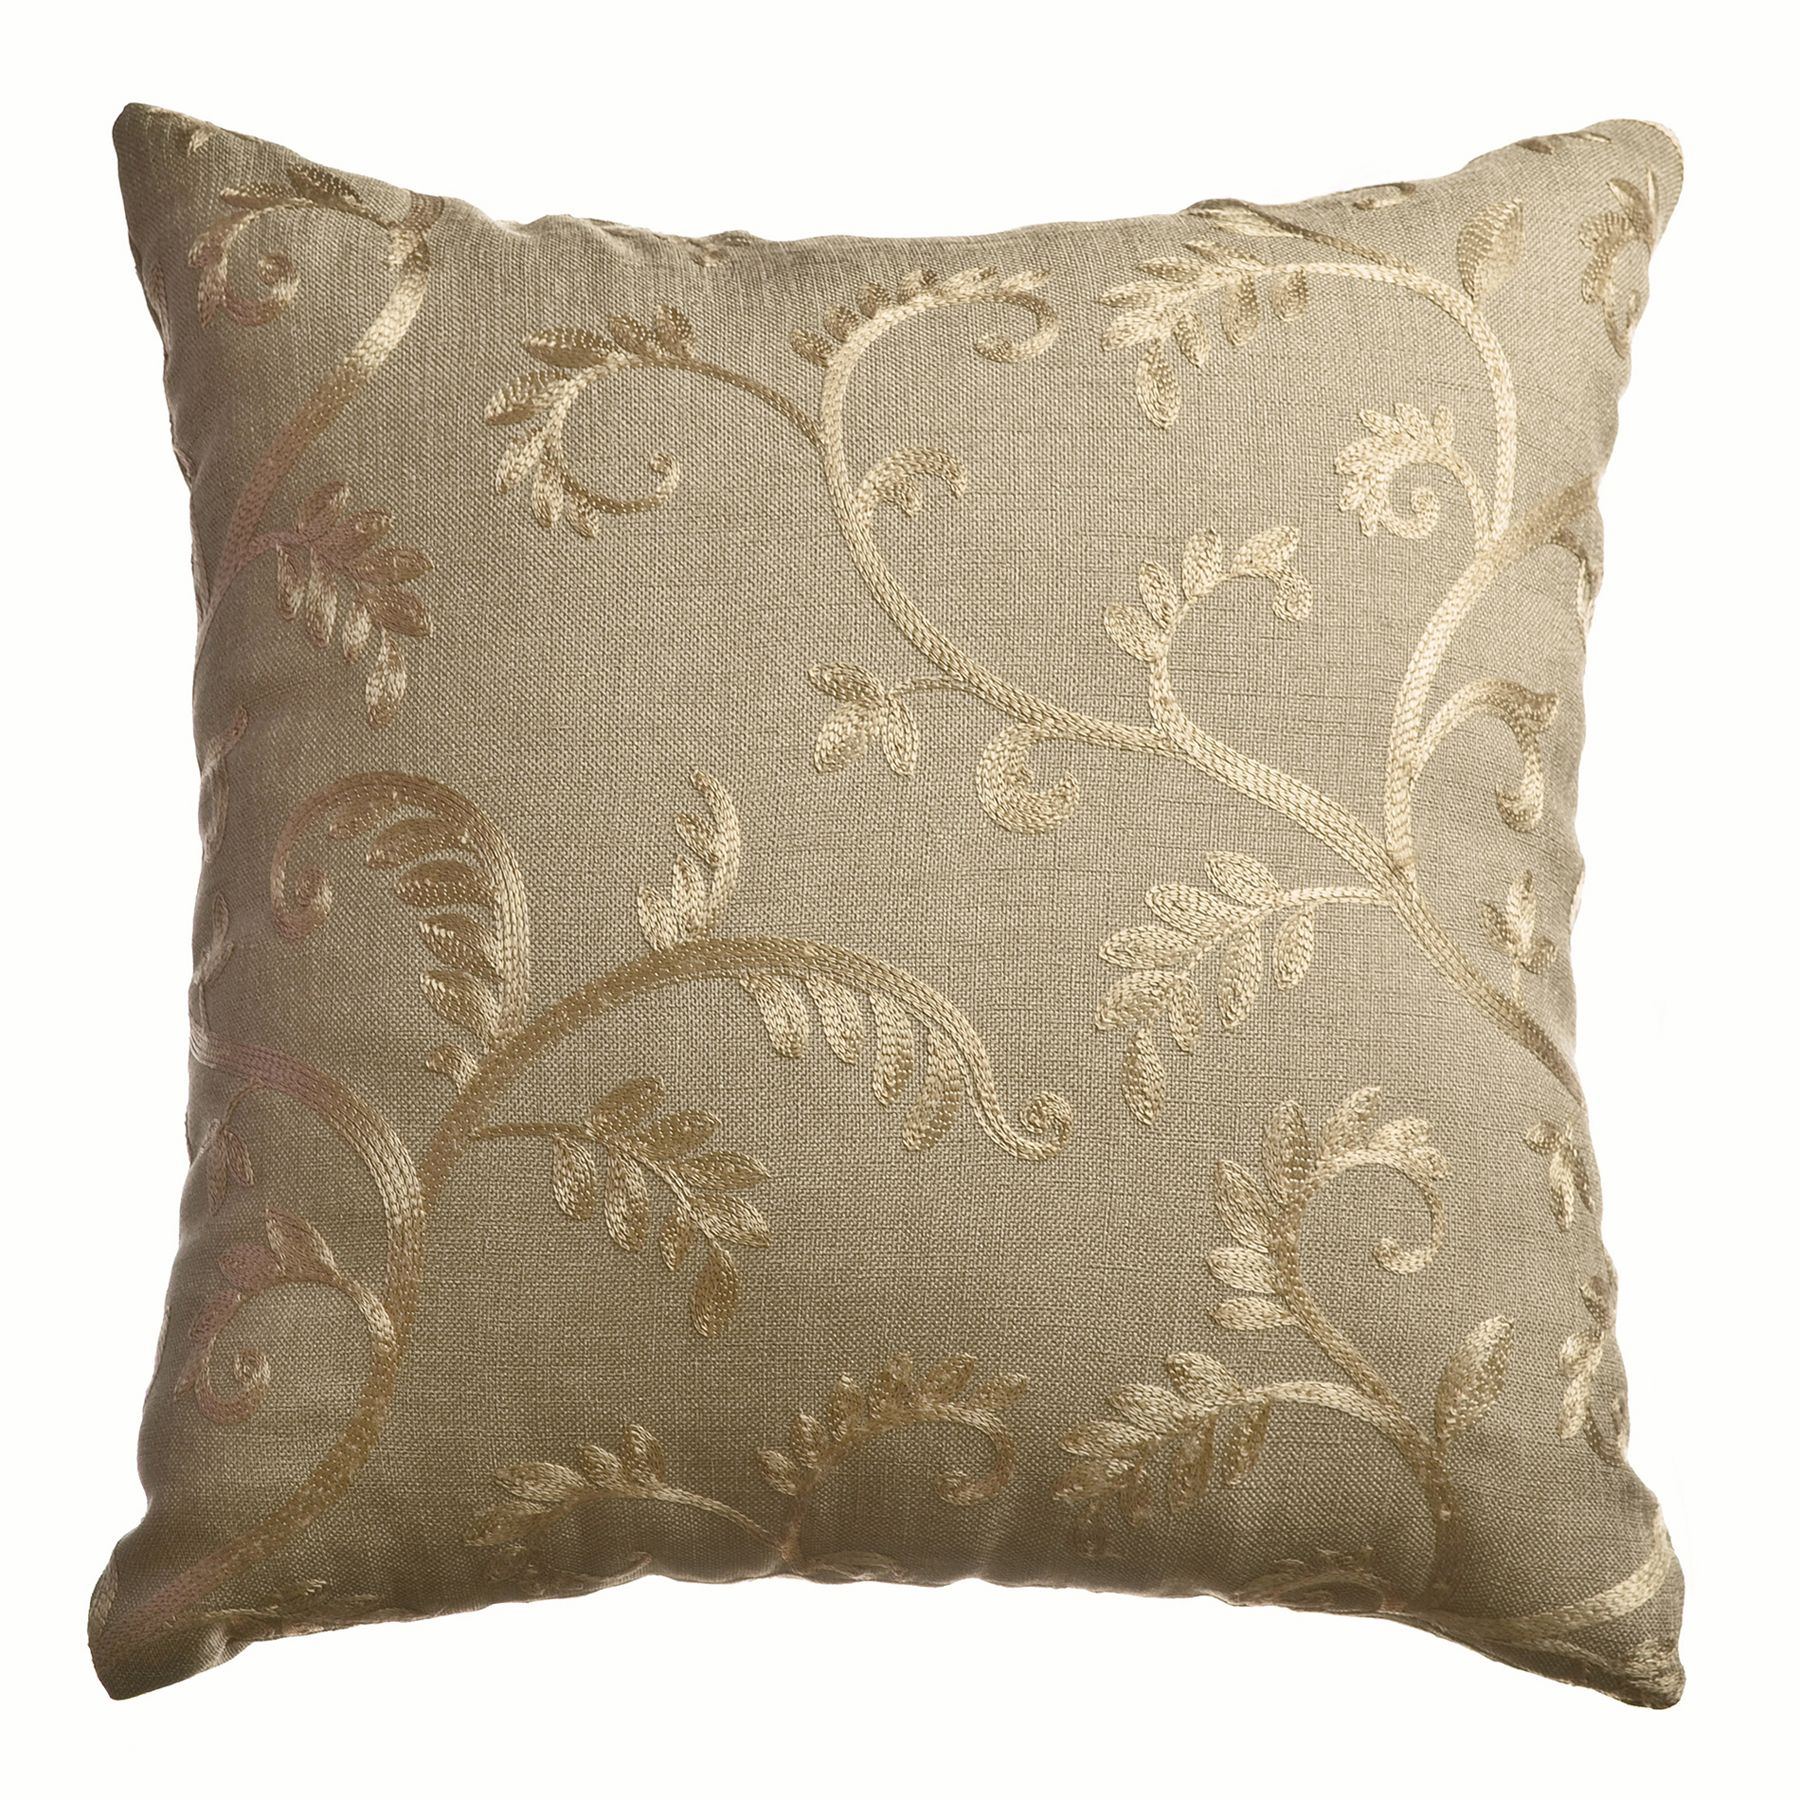 Decorative Pillows Kmart : Softline Home Fashions, Inc Margot Sage 18x18 Decorative Pillow